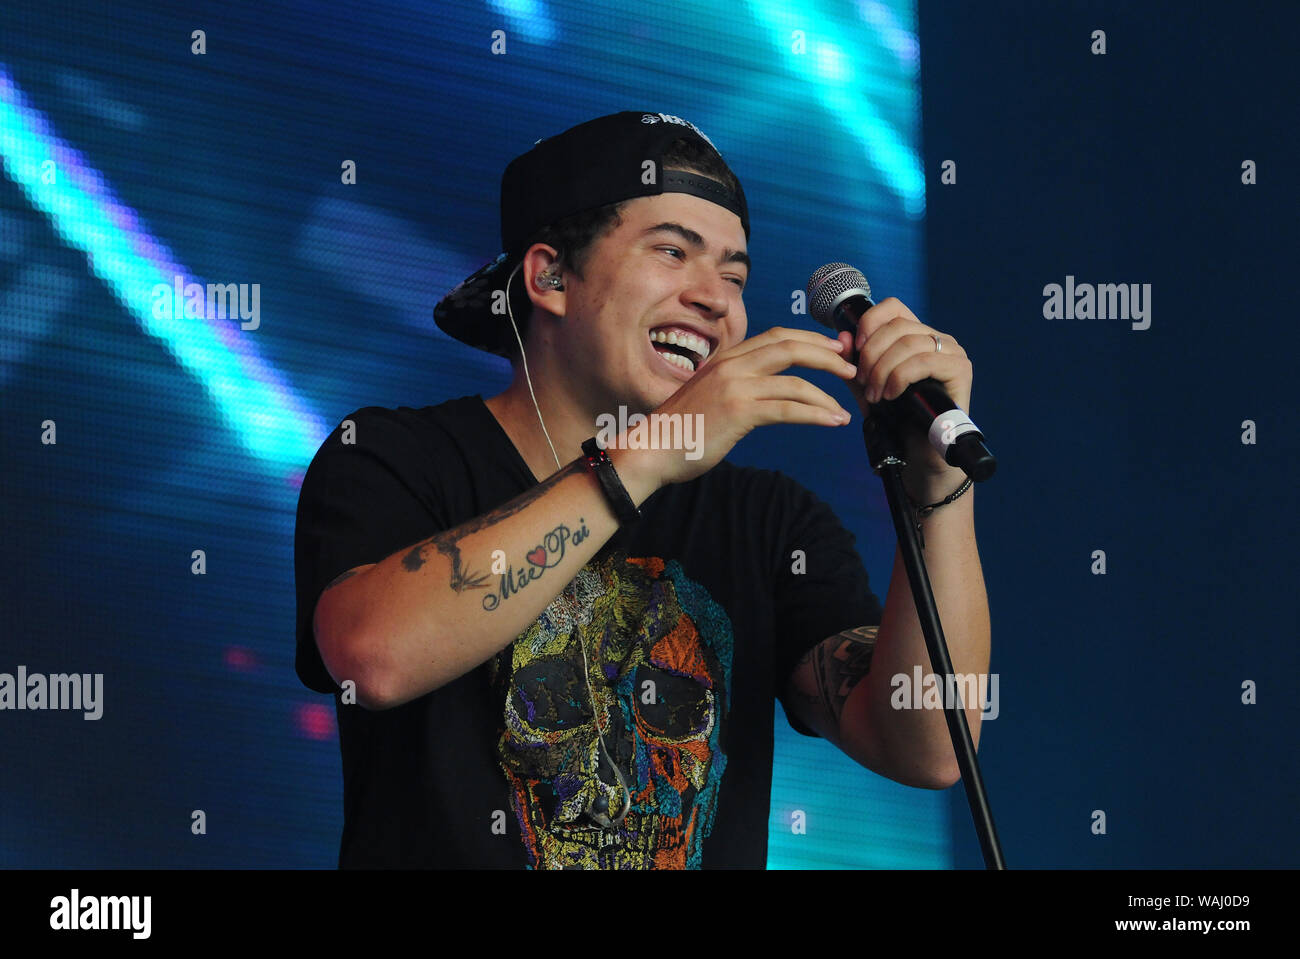 Rio de Janeiro, September 16, 2017. Whindersson Nunes, Brazil's most famous youtuber, during the performance of his show at Rock in Rio 2017, in the c Stock Photo